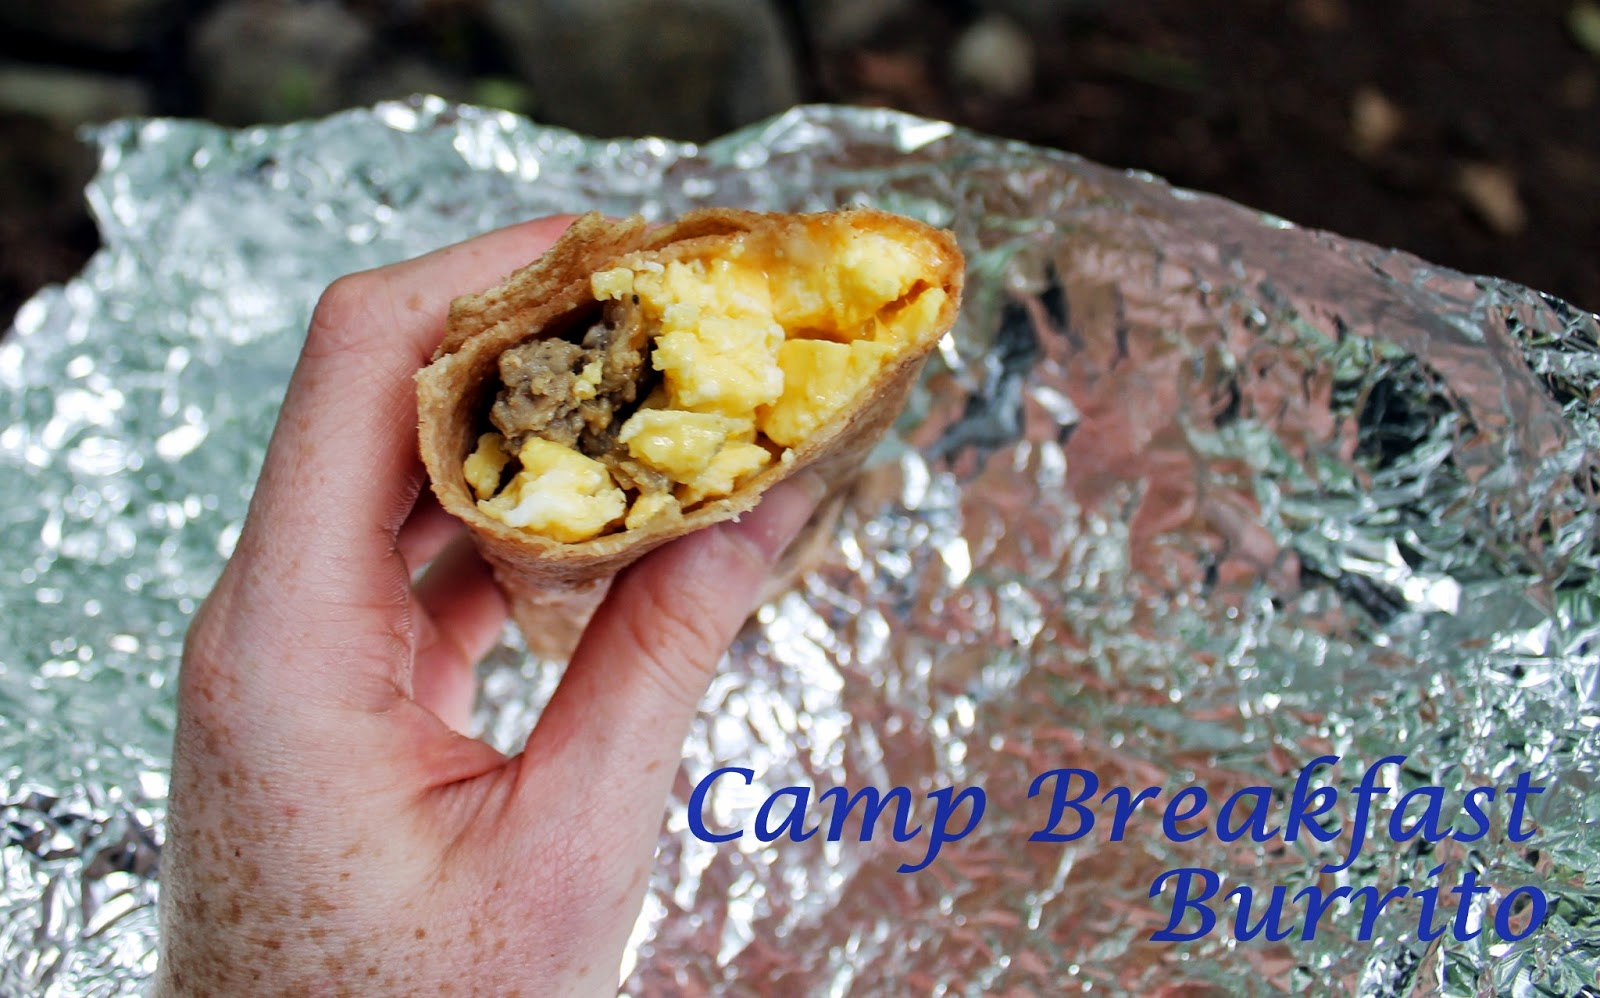 But I Do Have A Few Camping Recipes That Im Excited To Share Breakfast Burritos